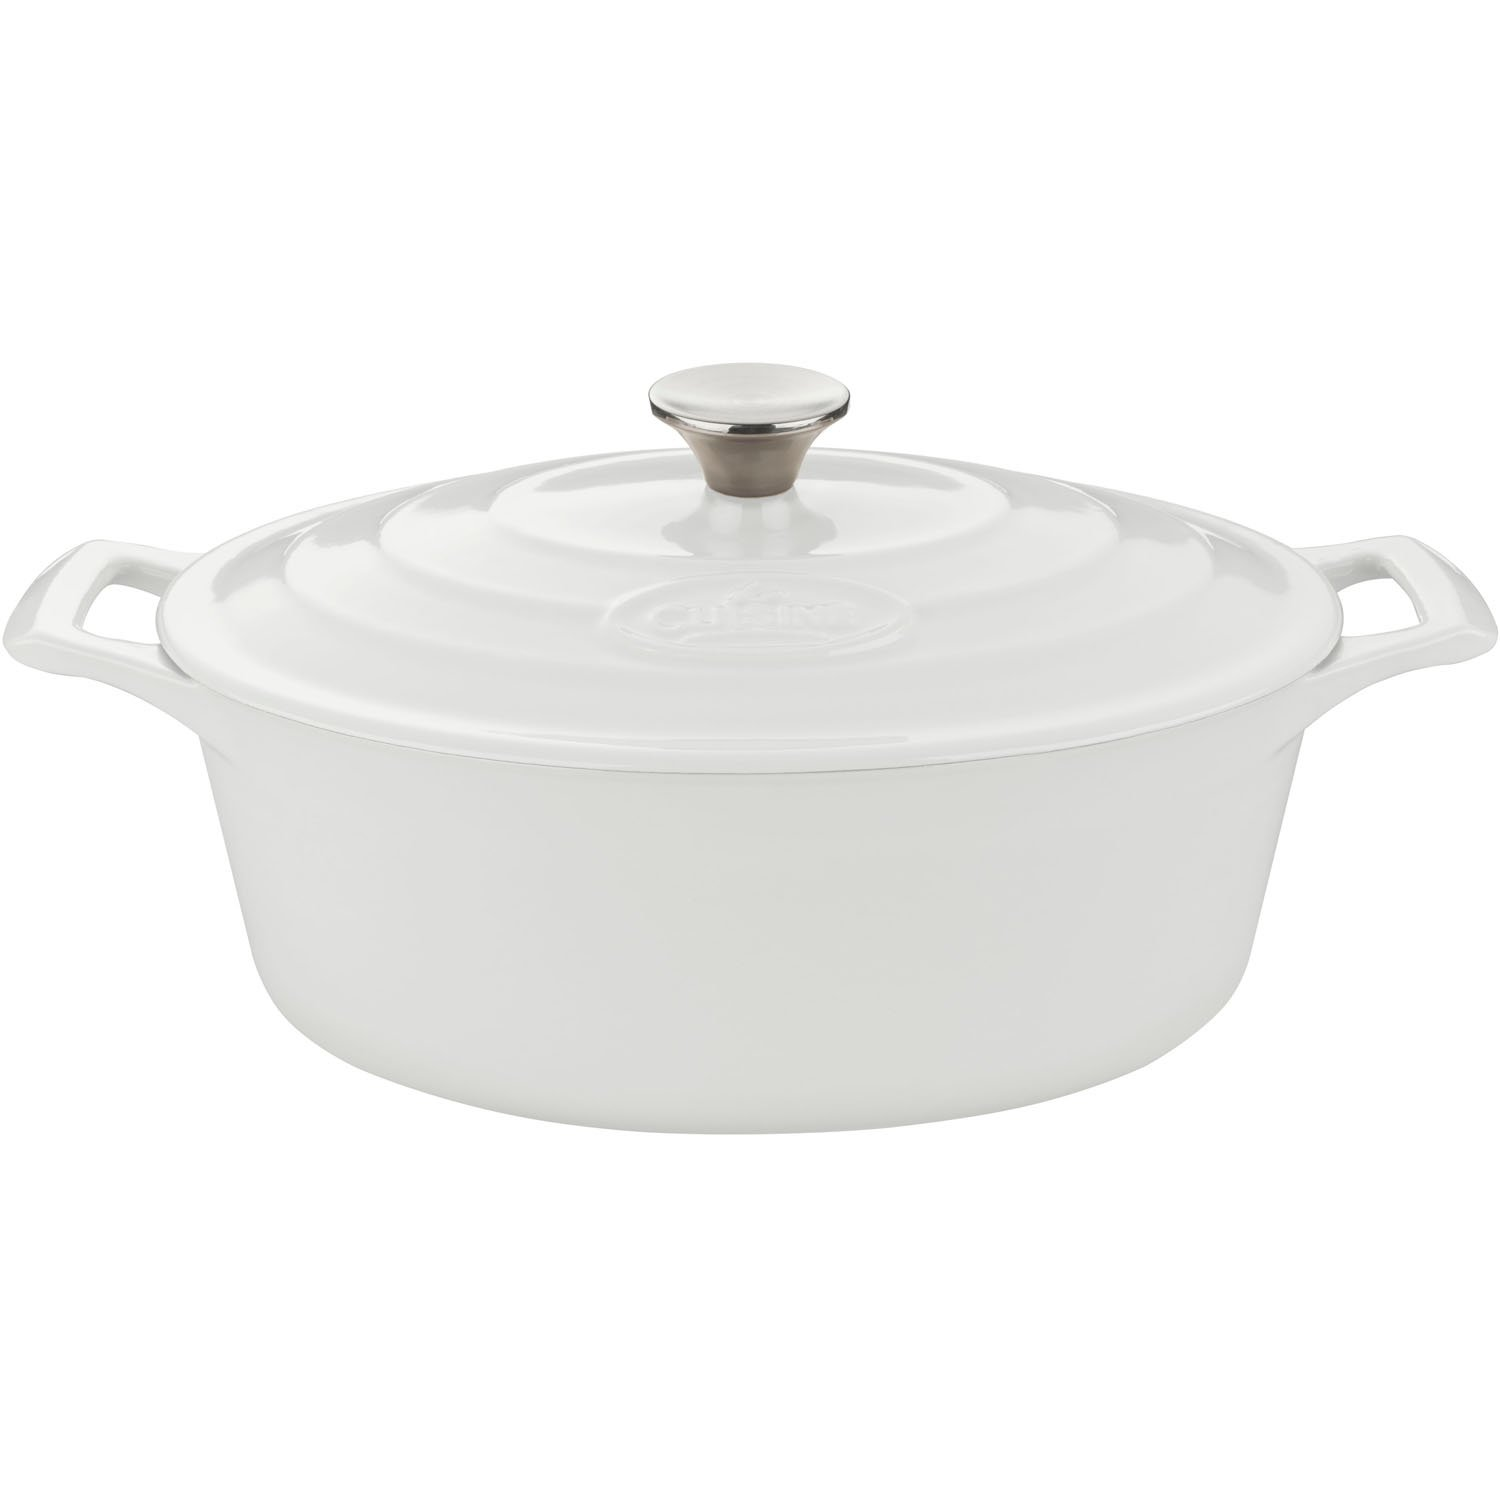 La Cuisine PRO 6.75 Qt Enameled Cast Iron Covered Oval Dutch Oven, White